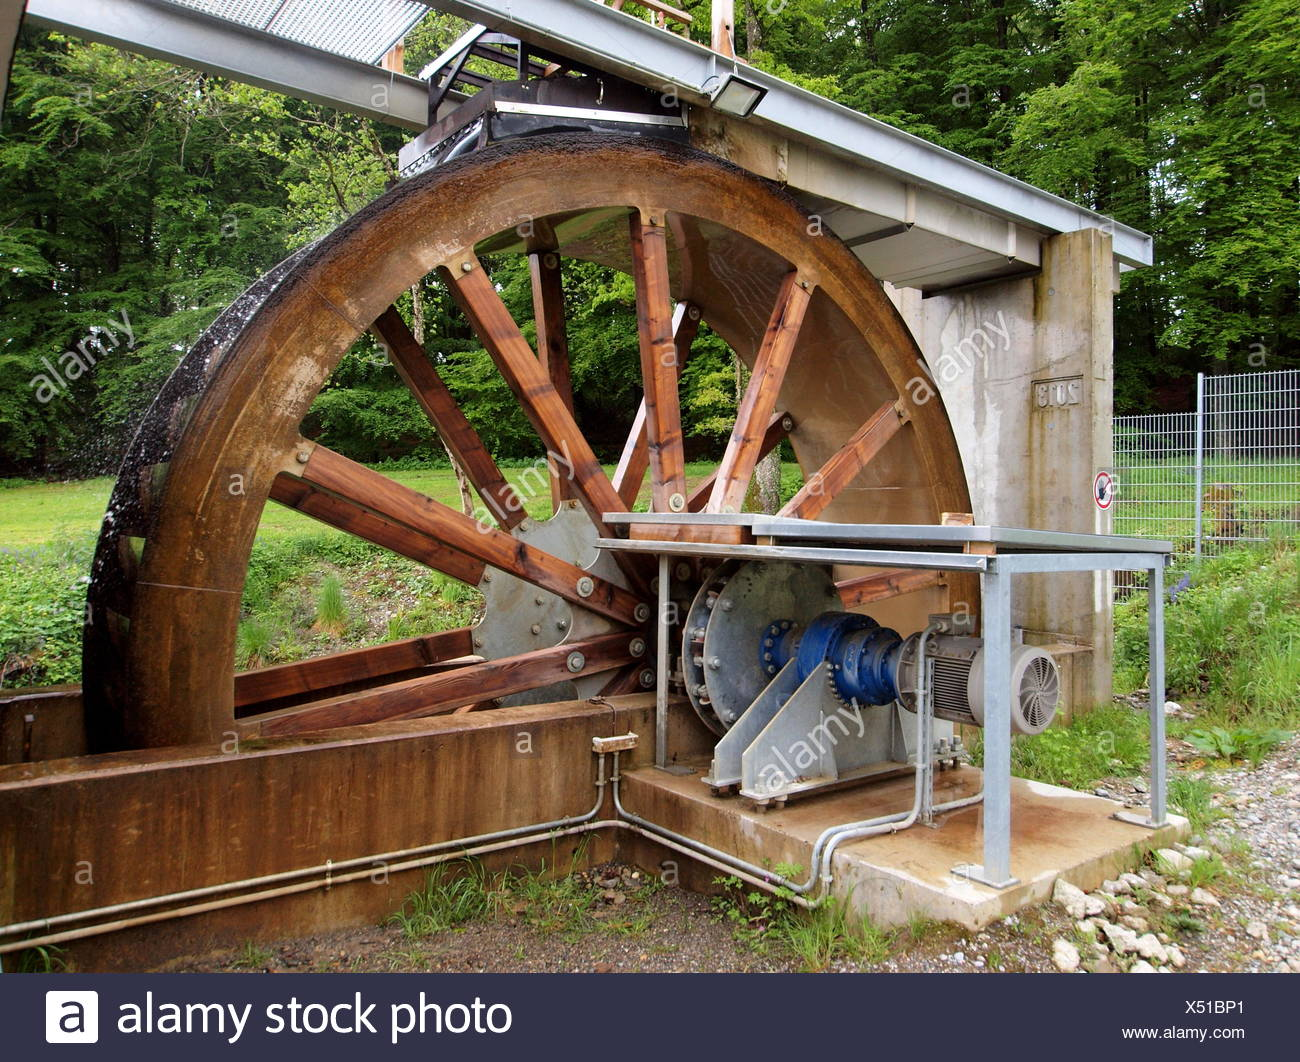 Modern water wheel to generate electricity - Stock Image